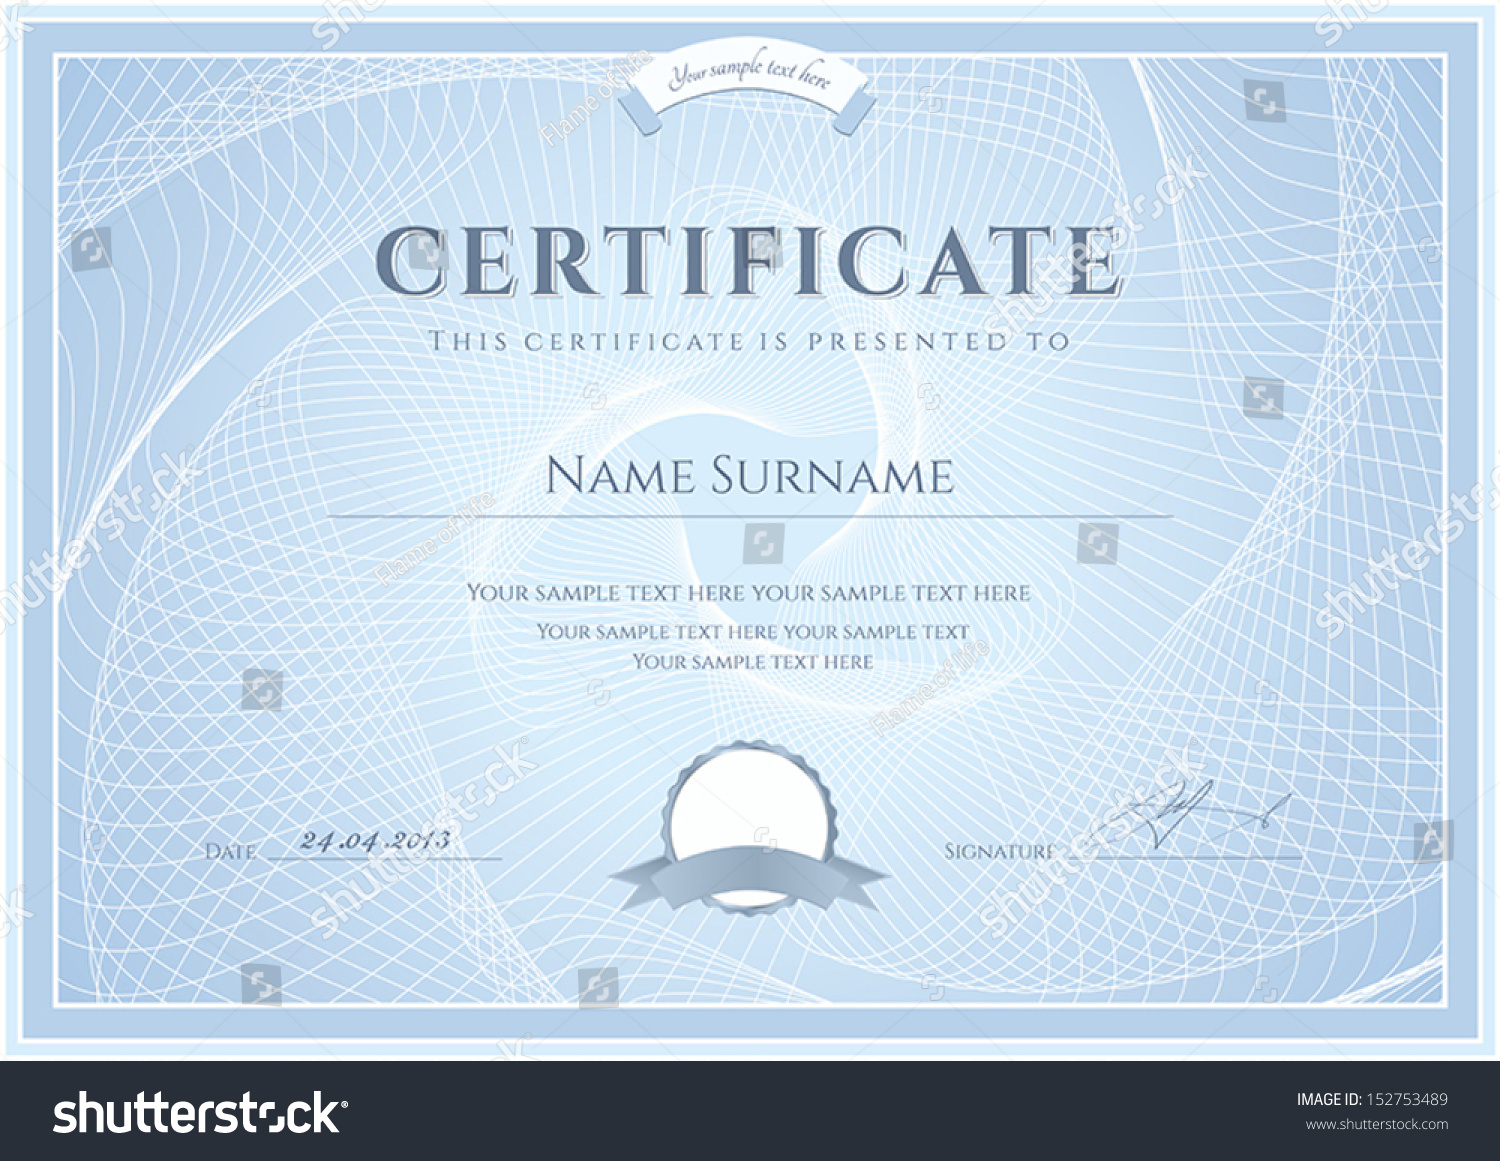 Certificate diploma completion design template background stock certificate diploma of completion design template background with guilloche pattern watermark alramifo Choice Image